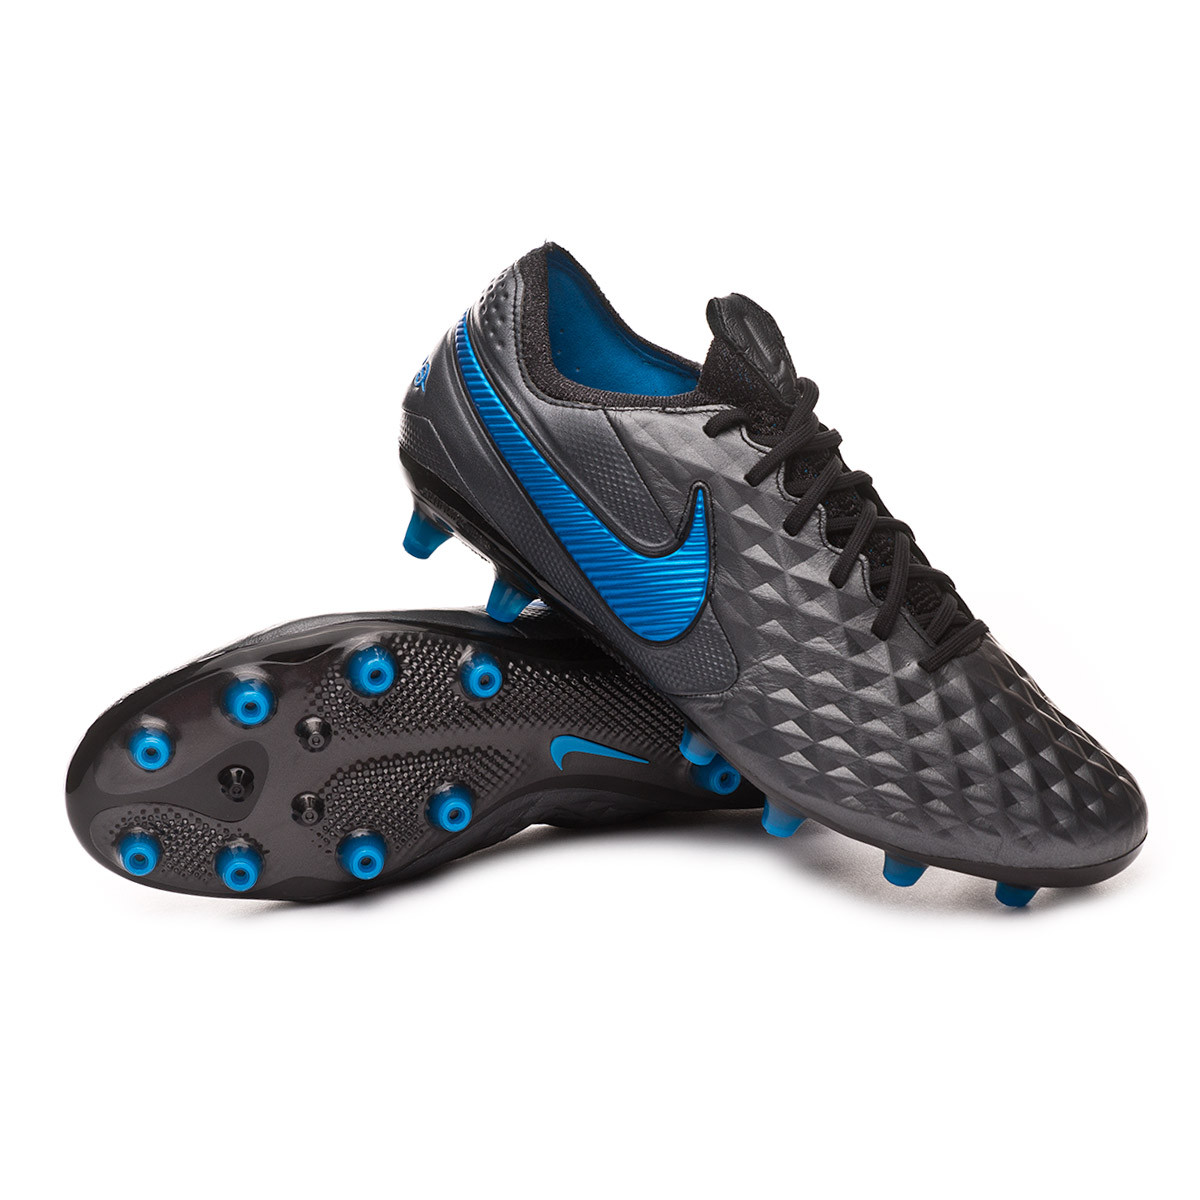 low priced 781c4 cb0a7 Nike Tiempo Legend VIII Elite AG-Pro Football Boots